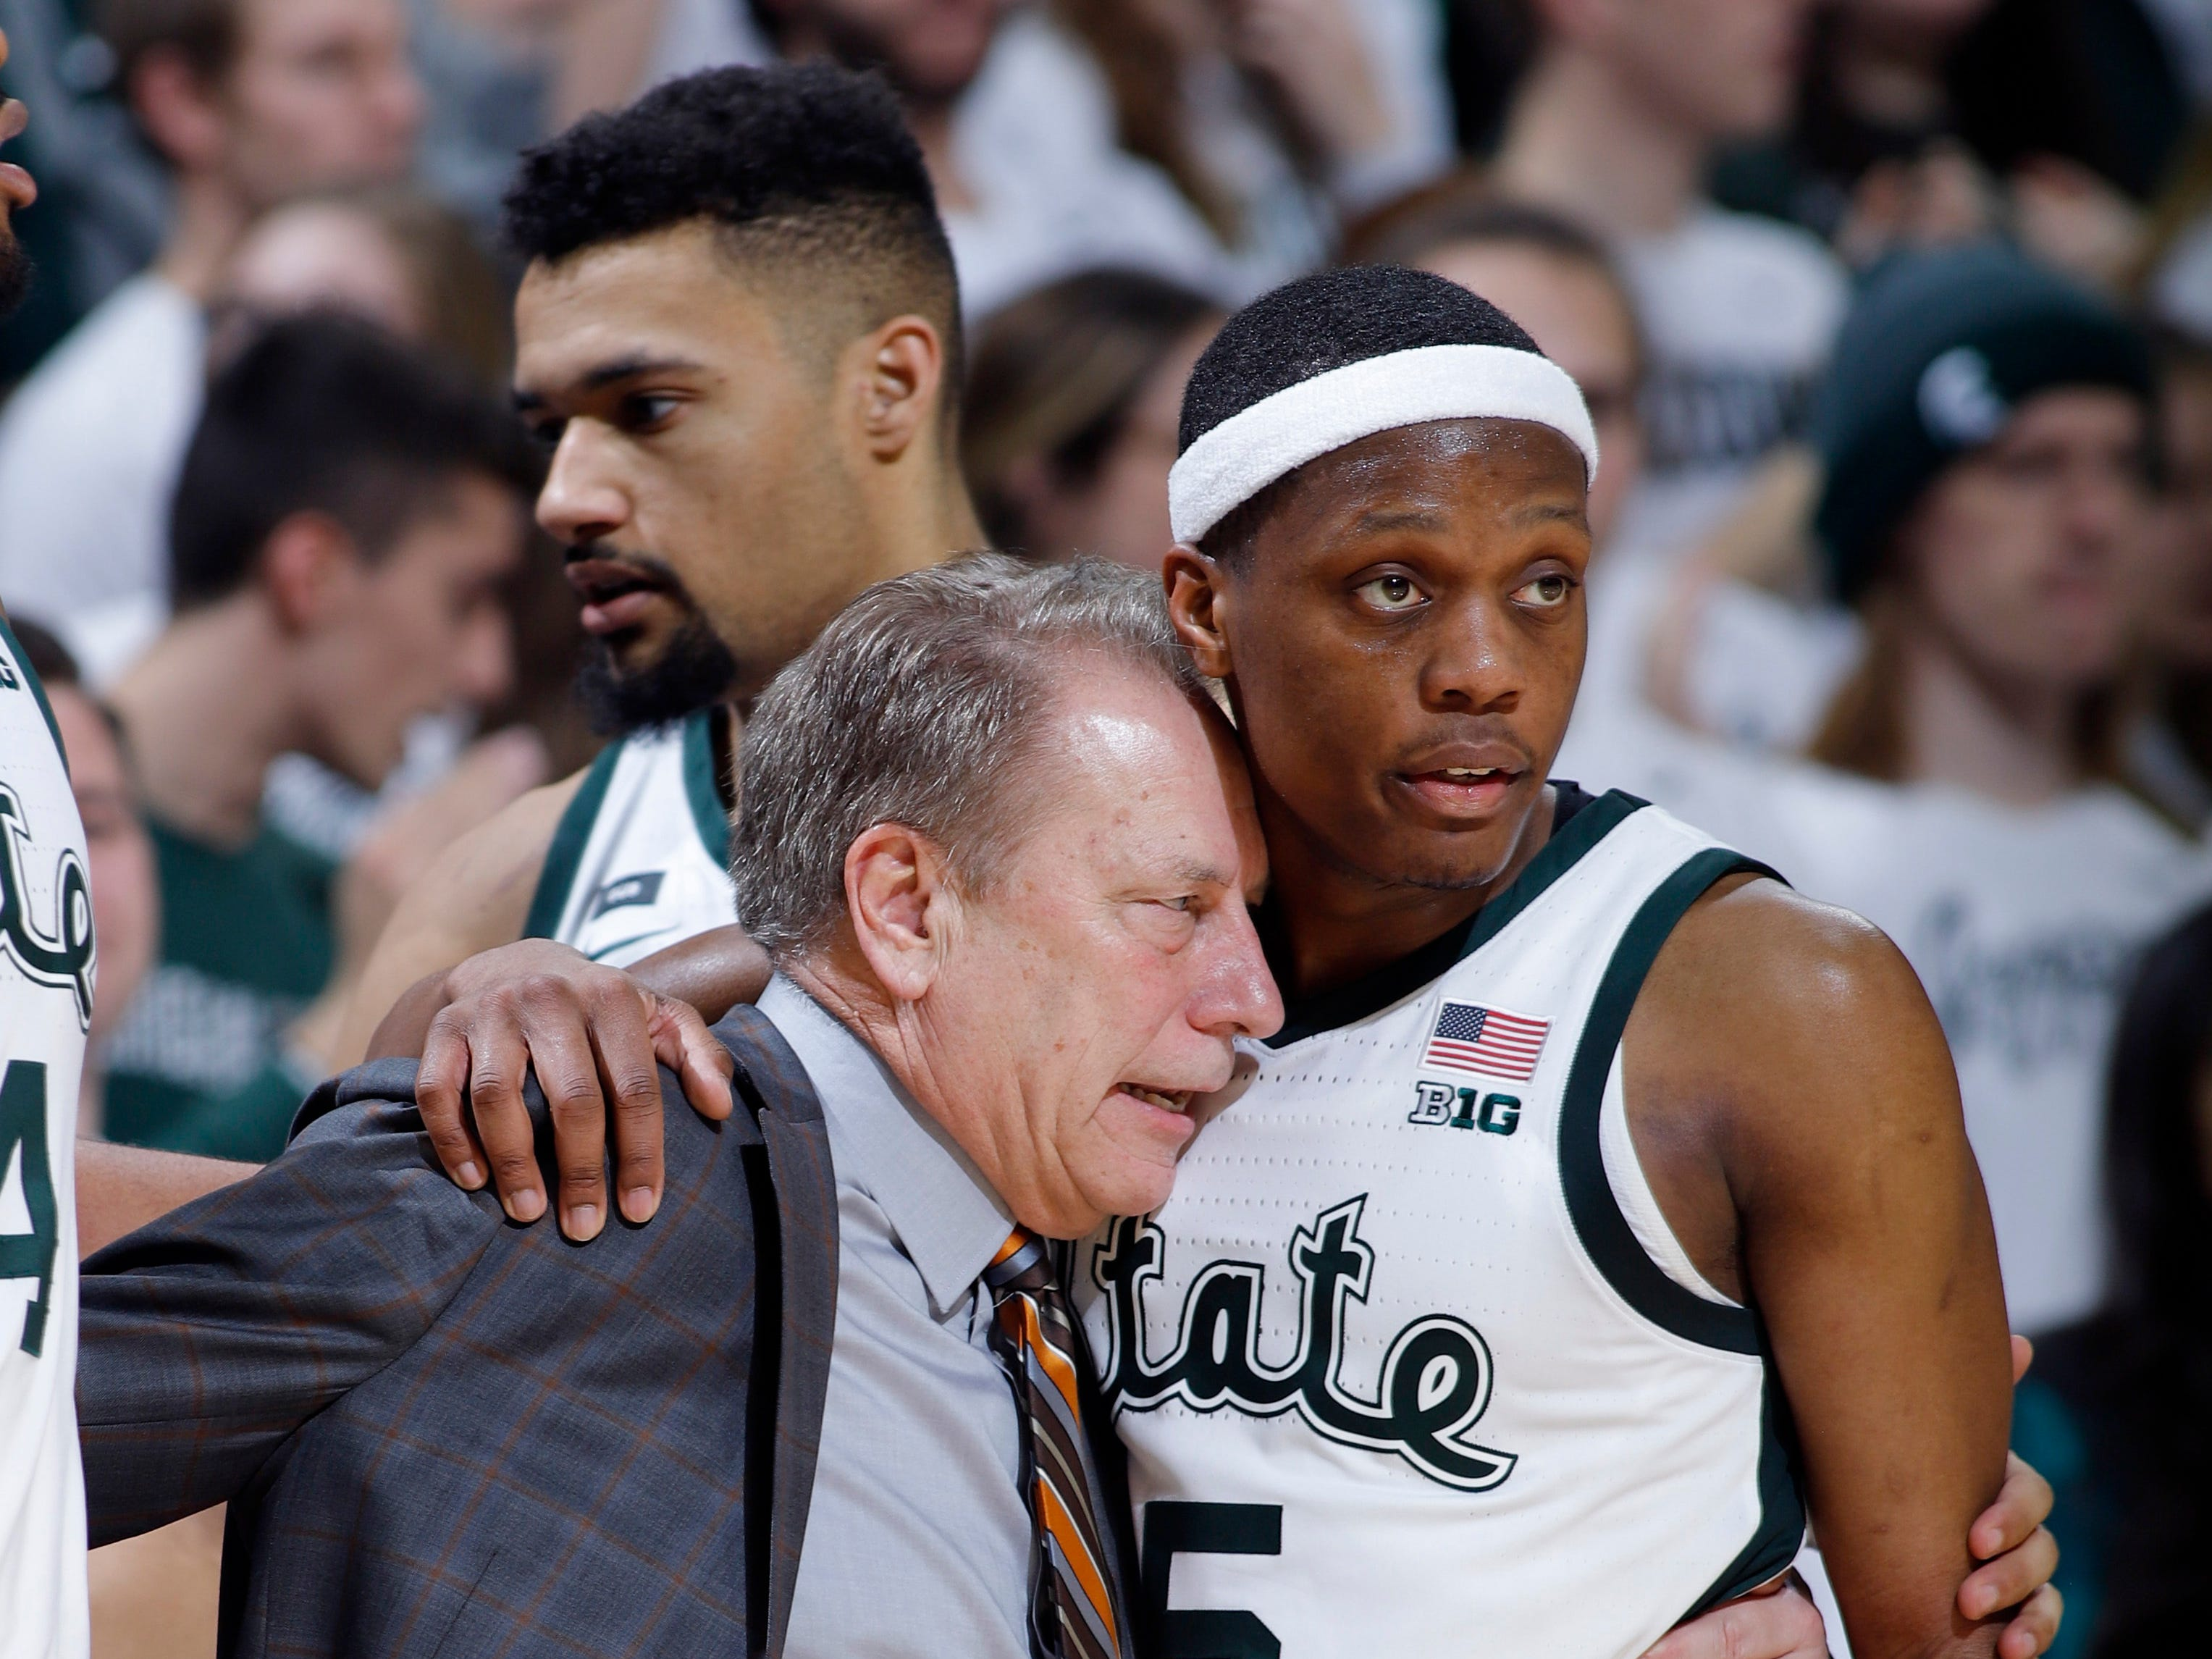 Michigan State coach Tom Izzo, left, talks with Cassius Winston during the second half of an NCAA college basketball game Maryland, Monday, Jan. 21, 2019, in East Lansing, Mich. Michigan State won 69-55.